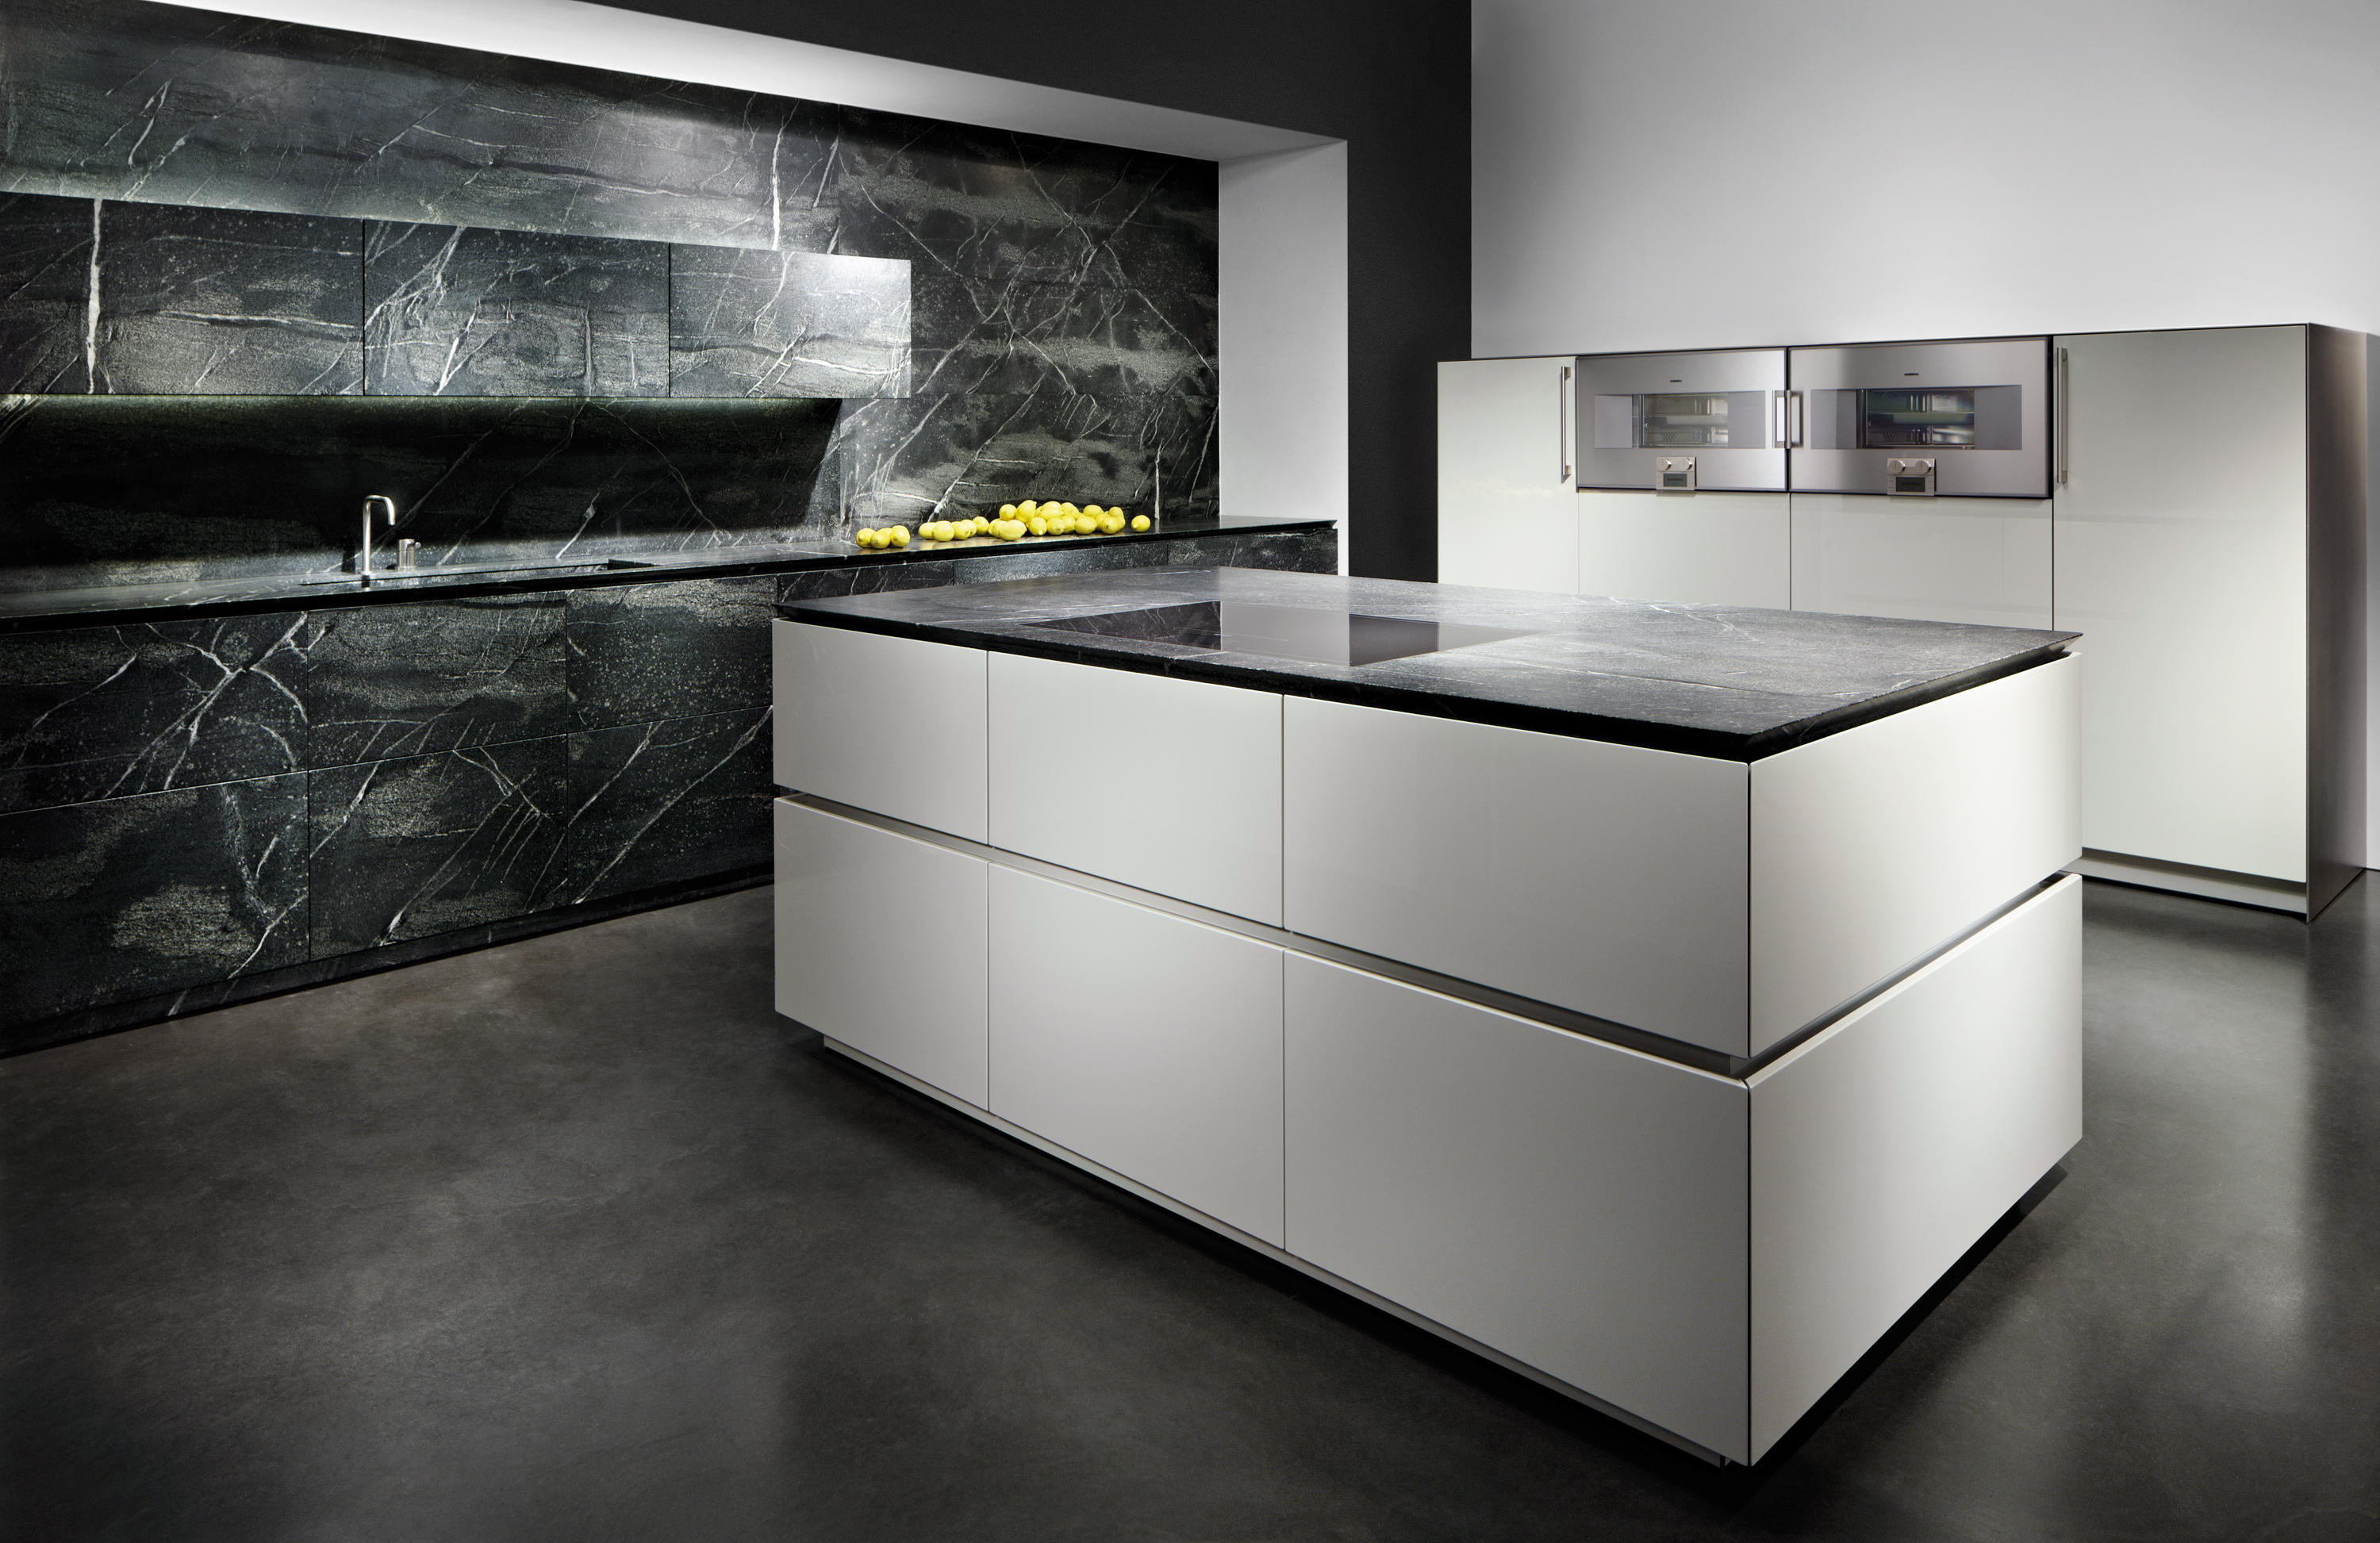 Soapstone Island Kitchens From Eggersmann Architonic - Eggersmann Küchen